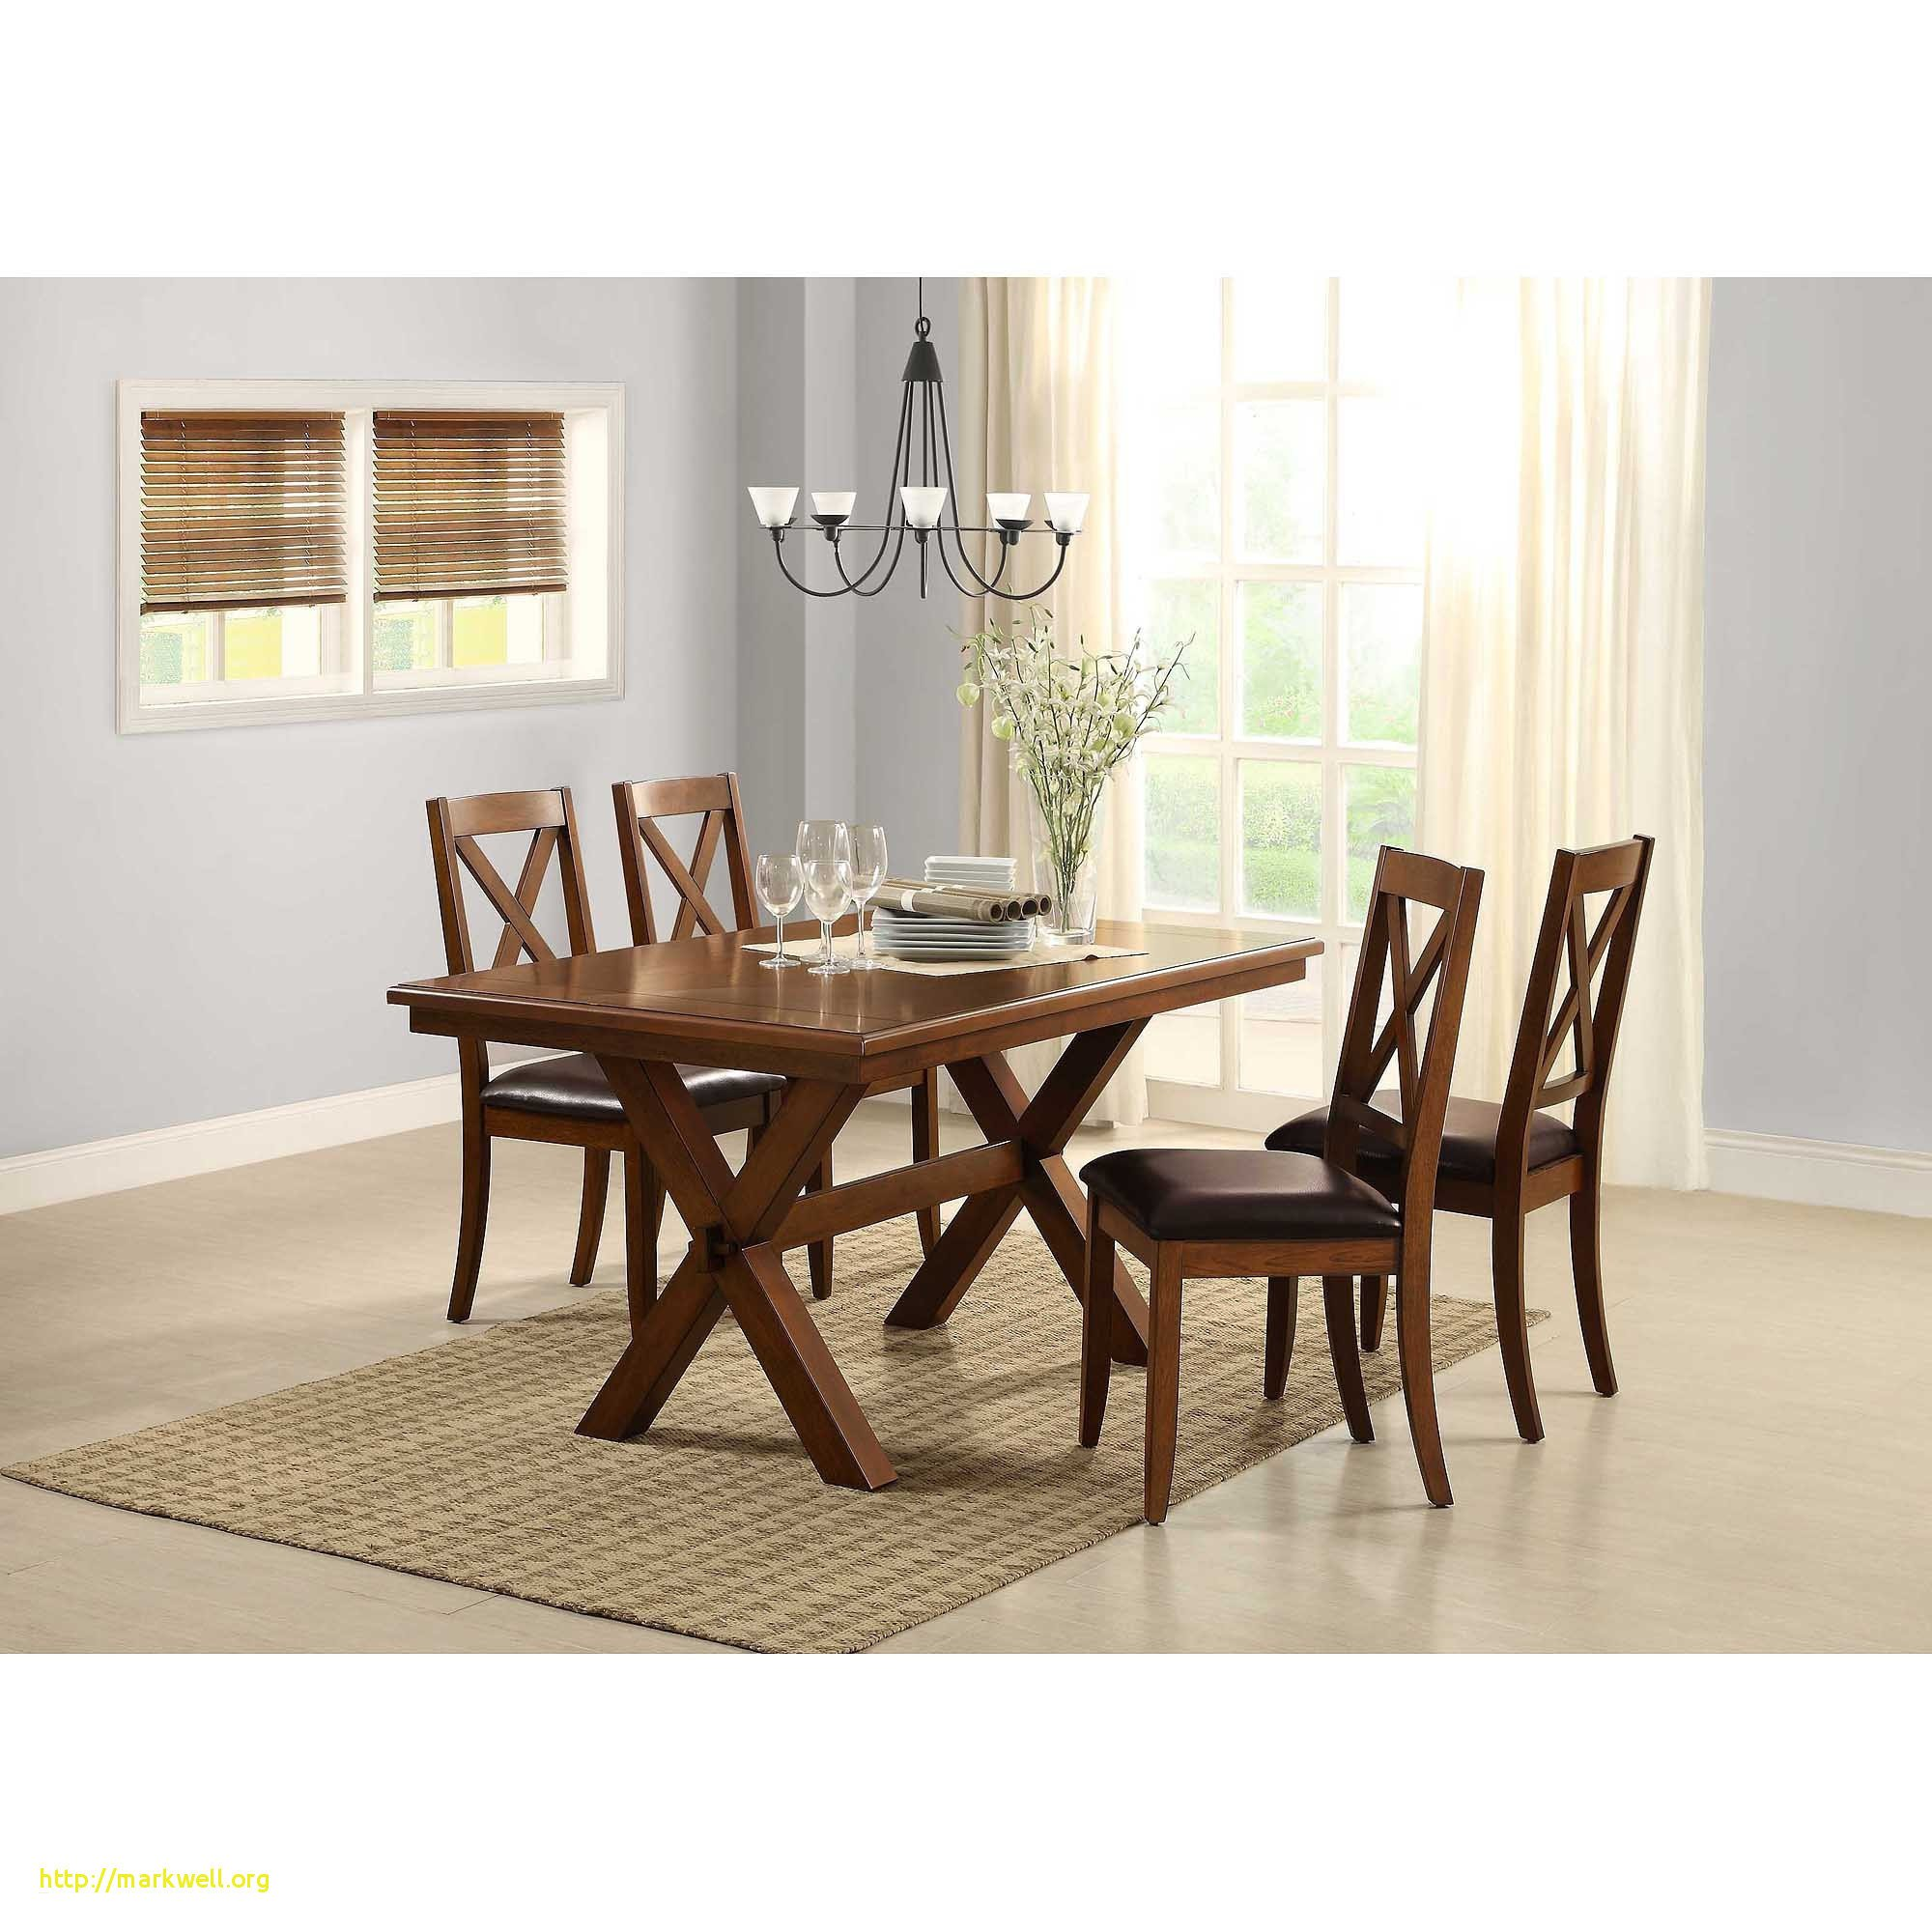 Wal Mart Bedroom Furniture Luxury Fresh Walmart Dining Room Chairs